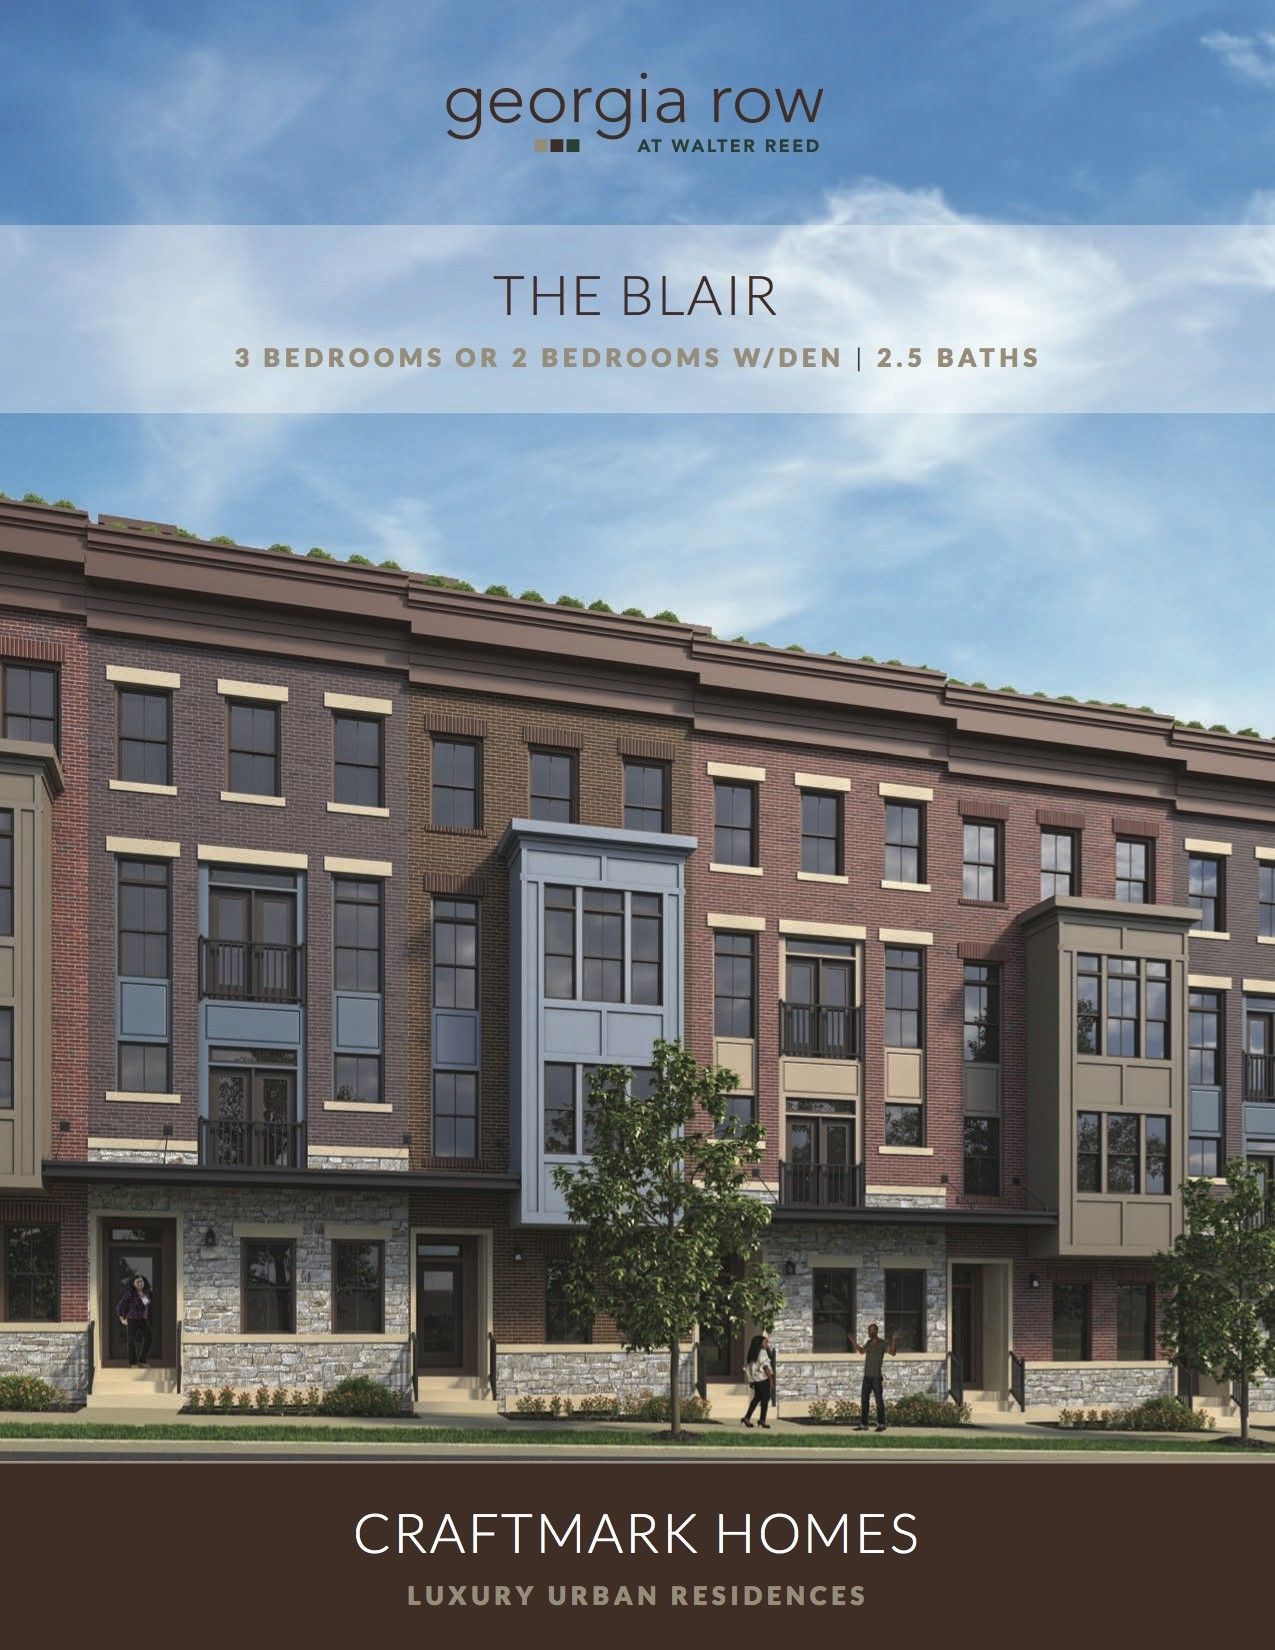 The Blair by Craftmark Homes